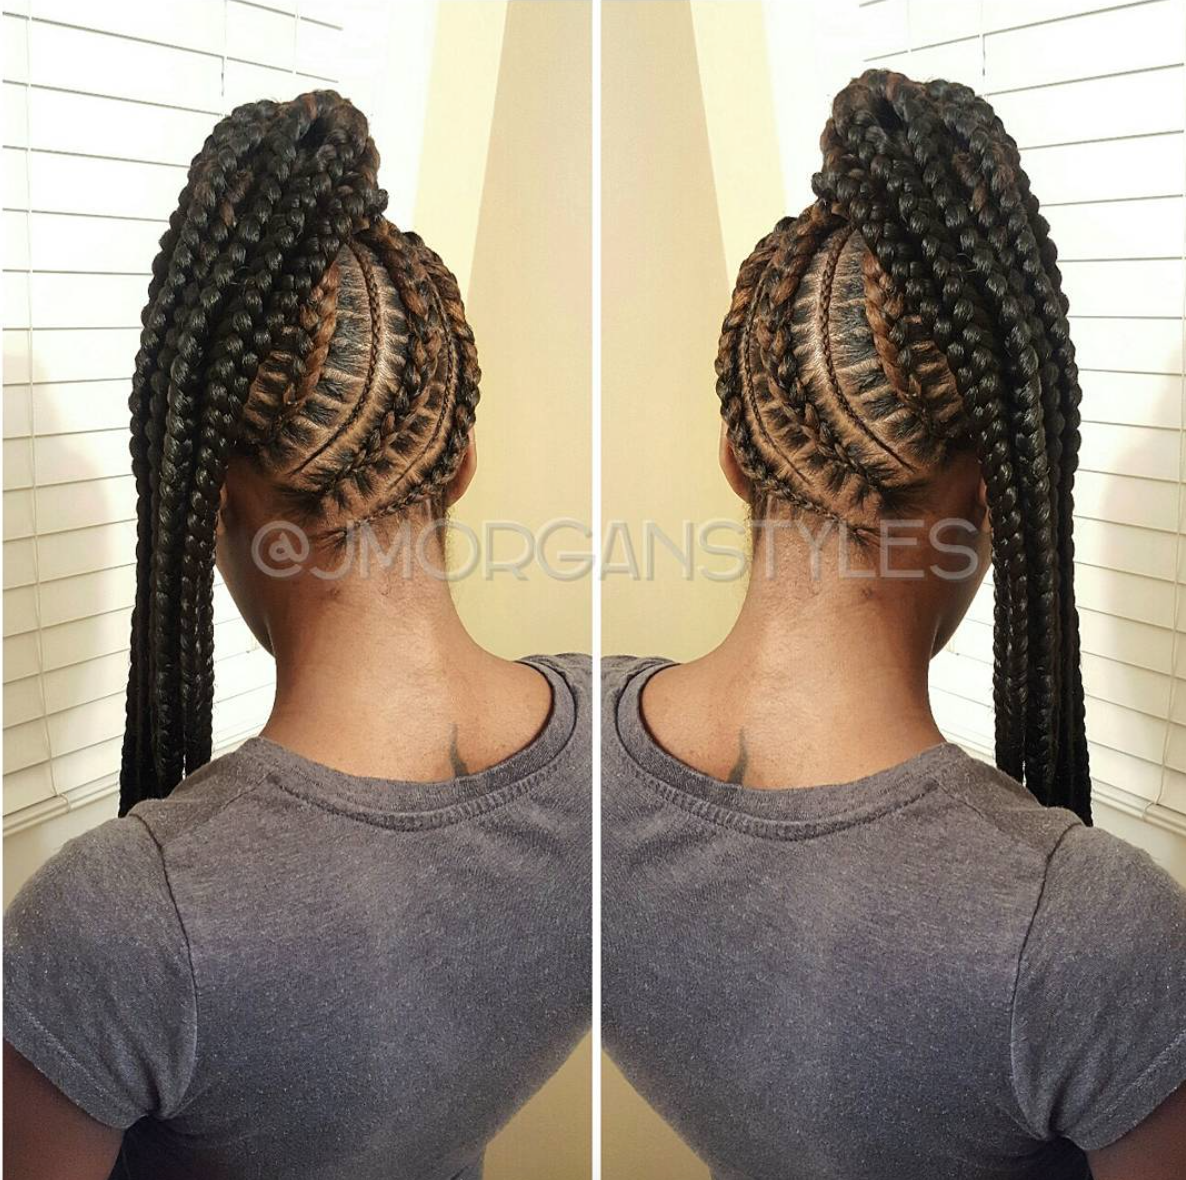 Love this braided pony by jmorganstyles read the article here